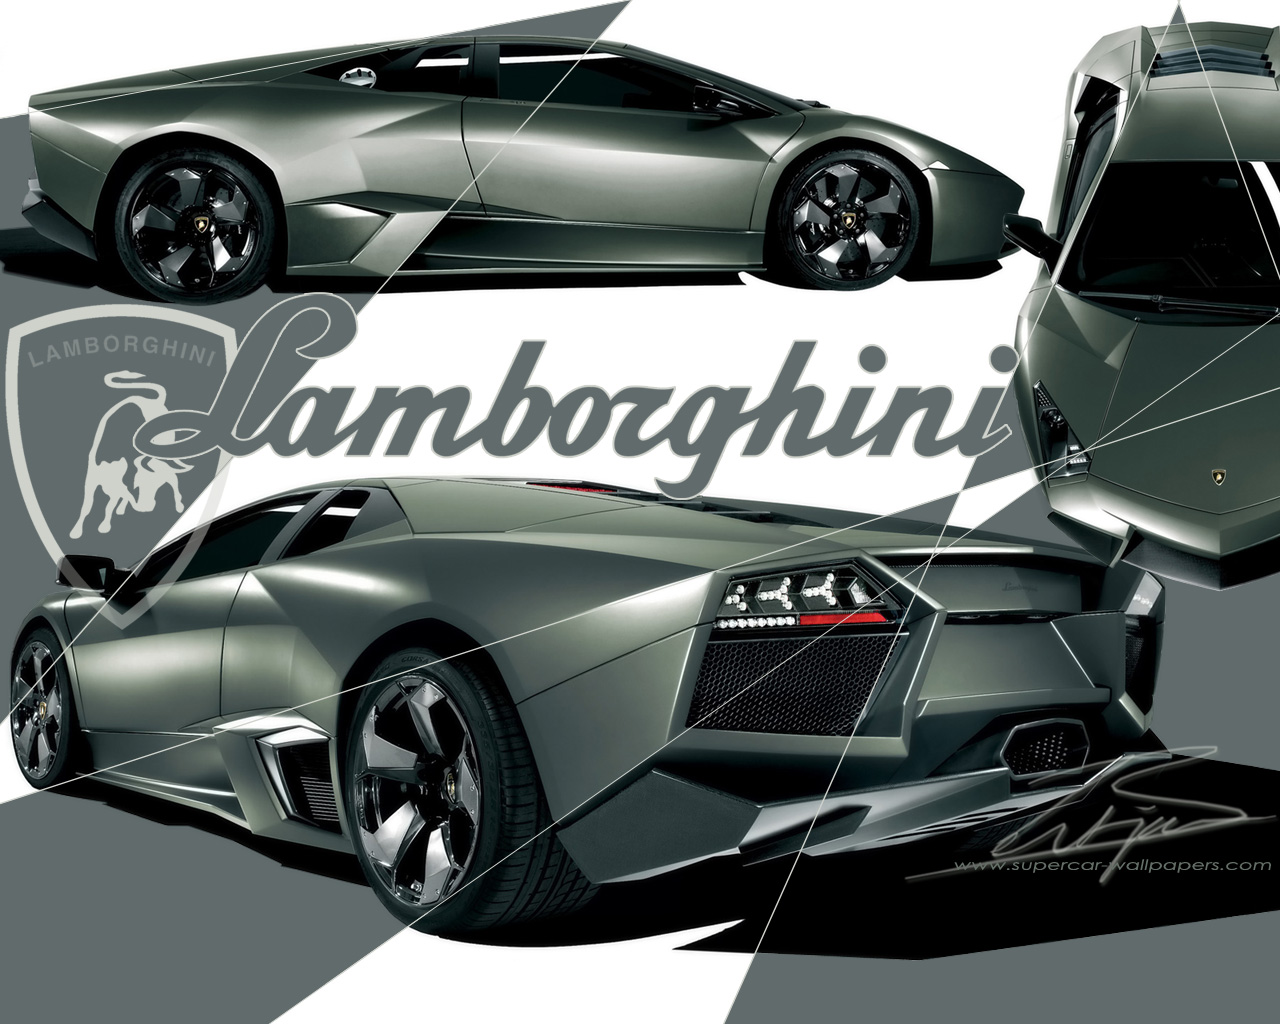 lamborghini reventon image wallpaper - photo #30